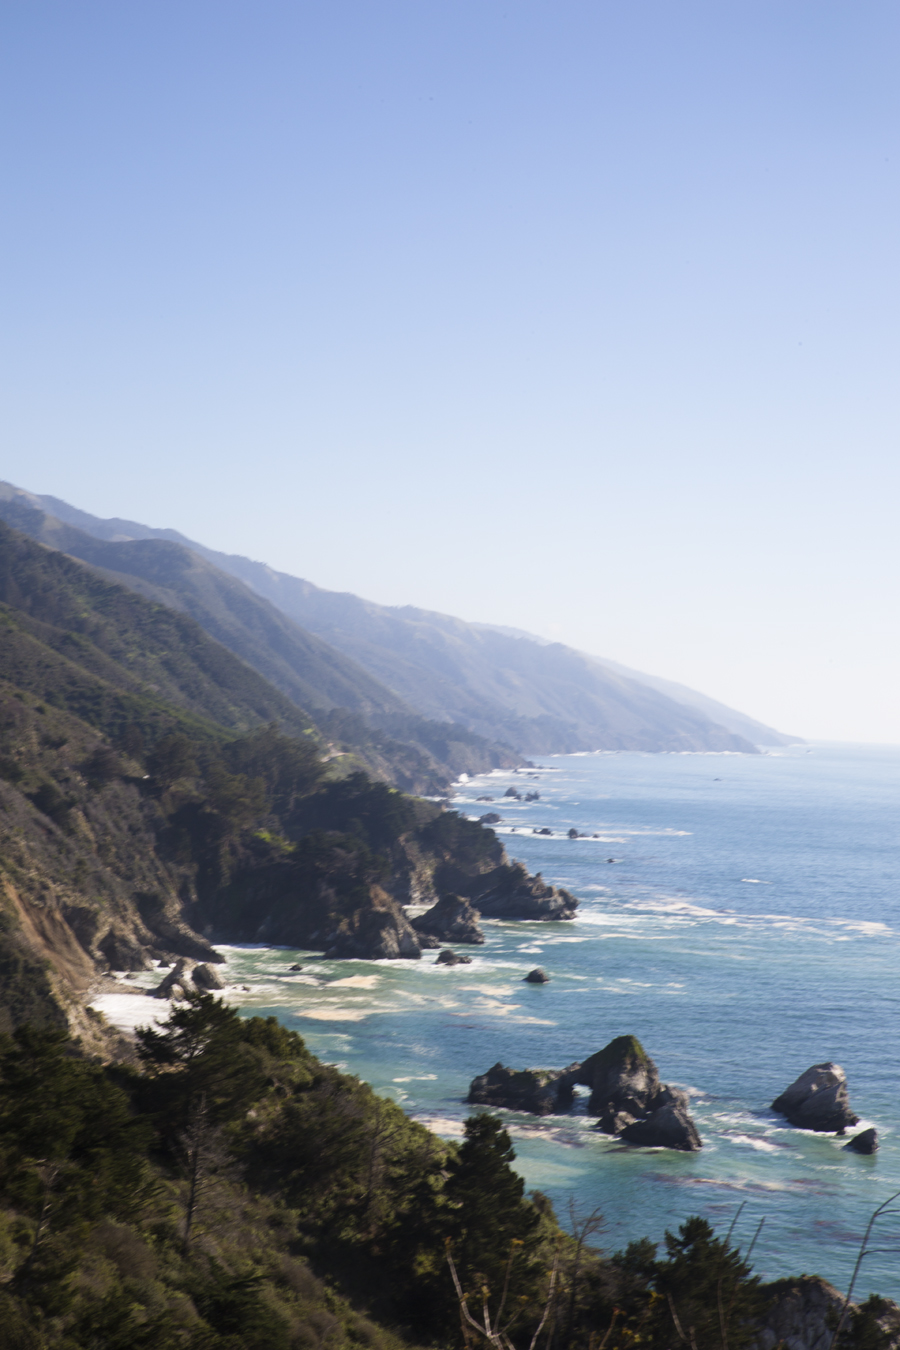 Everywhere we went on the Pacific Coast Highway, we were constantly blown away by the geographic formations of the coast.